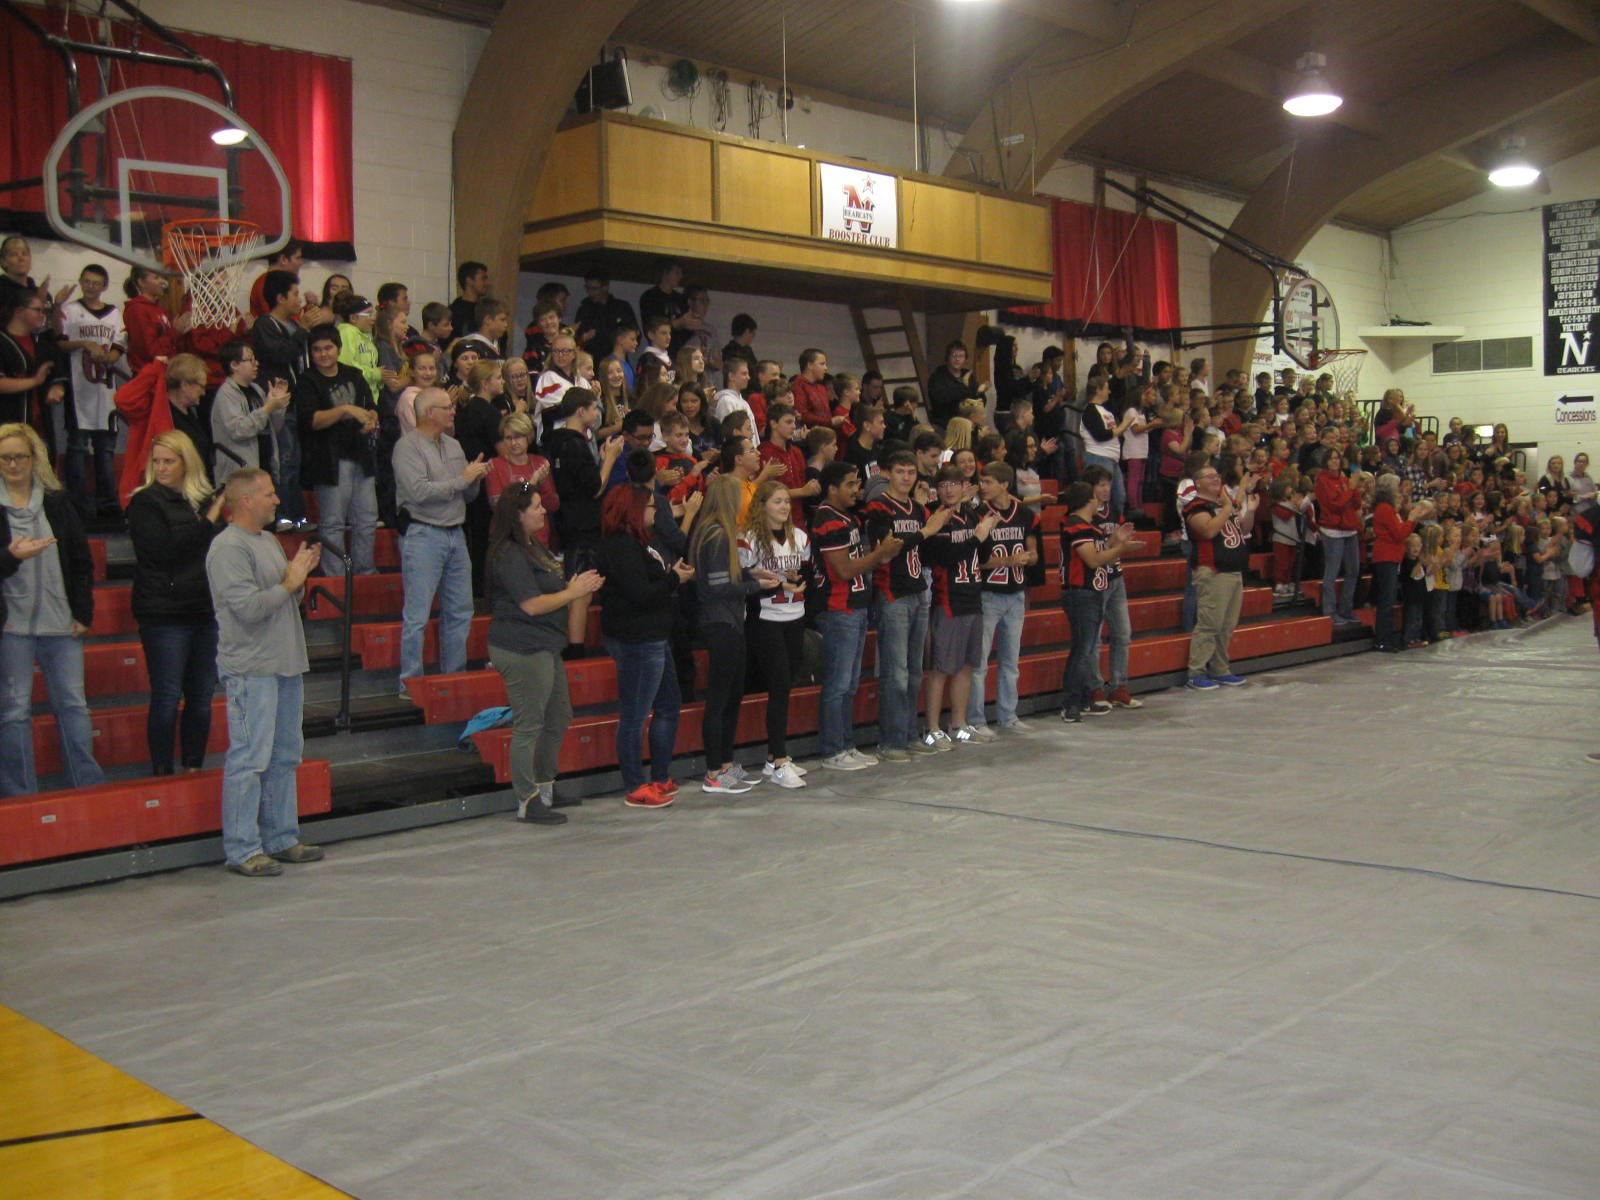 Crowd on their feet during Pep Rally